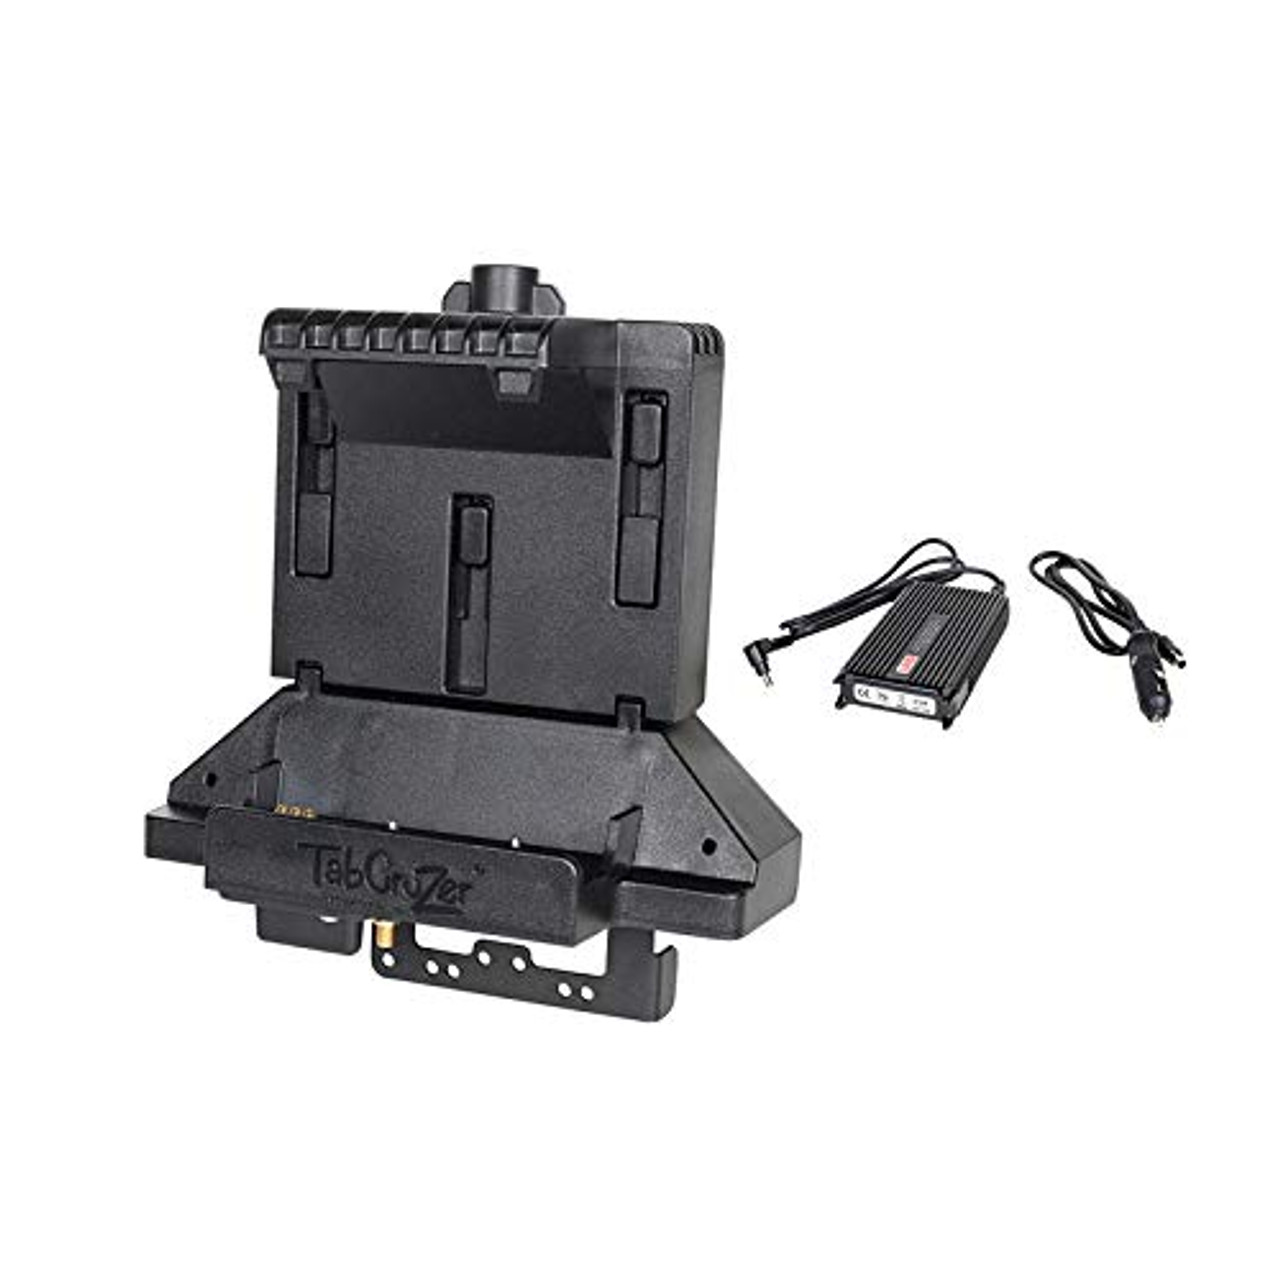 KIT: Getac T800 TRI RF Dock (7160-0565-03) and Lind Power Adapter (#15110) (7170-0245) | 0407X6WXT9B